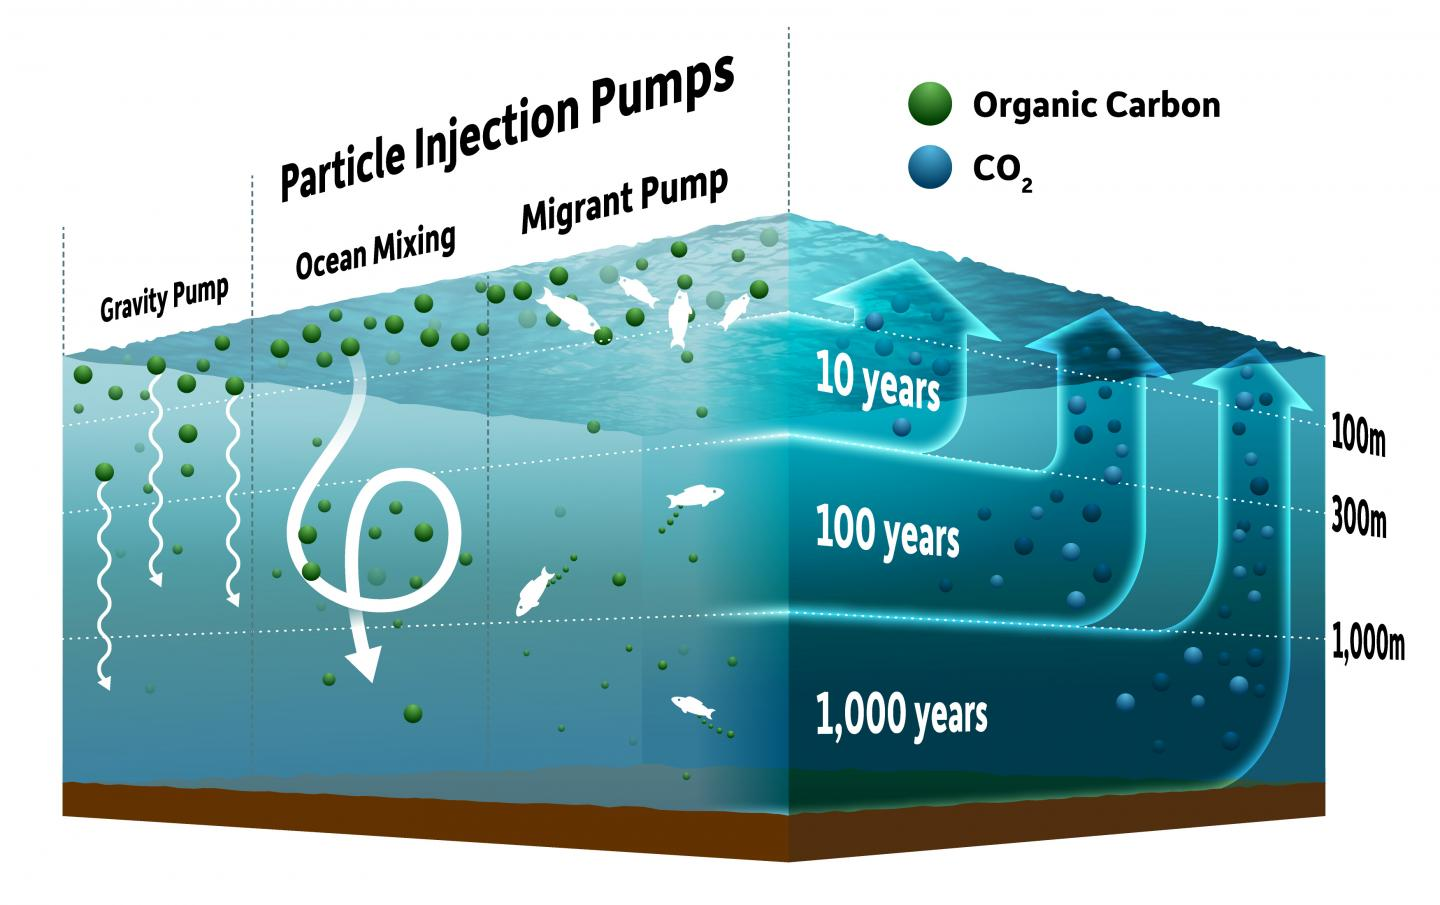 Particle Injection Pumps in the Ocean Carbon Cycle